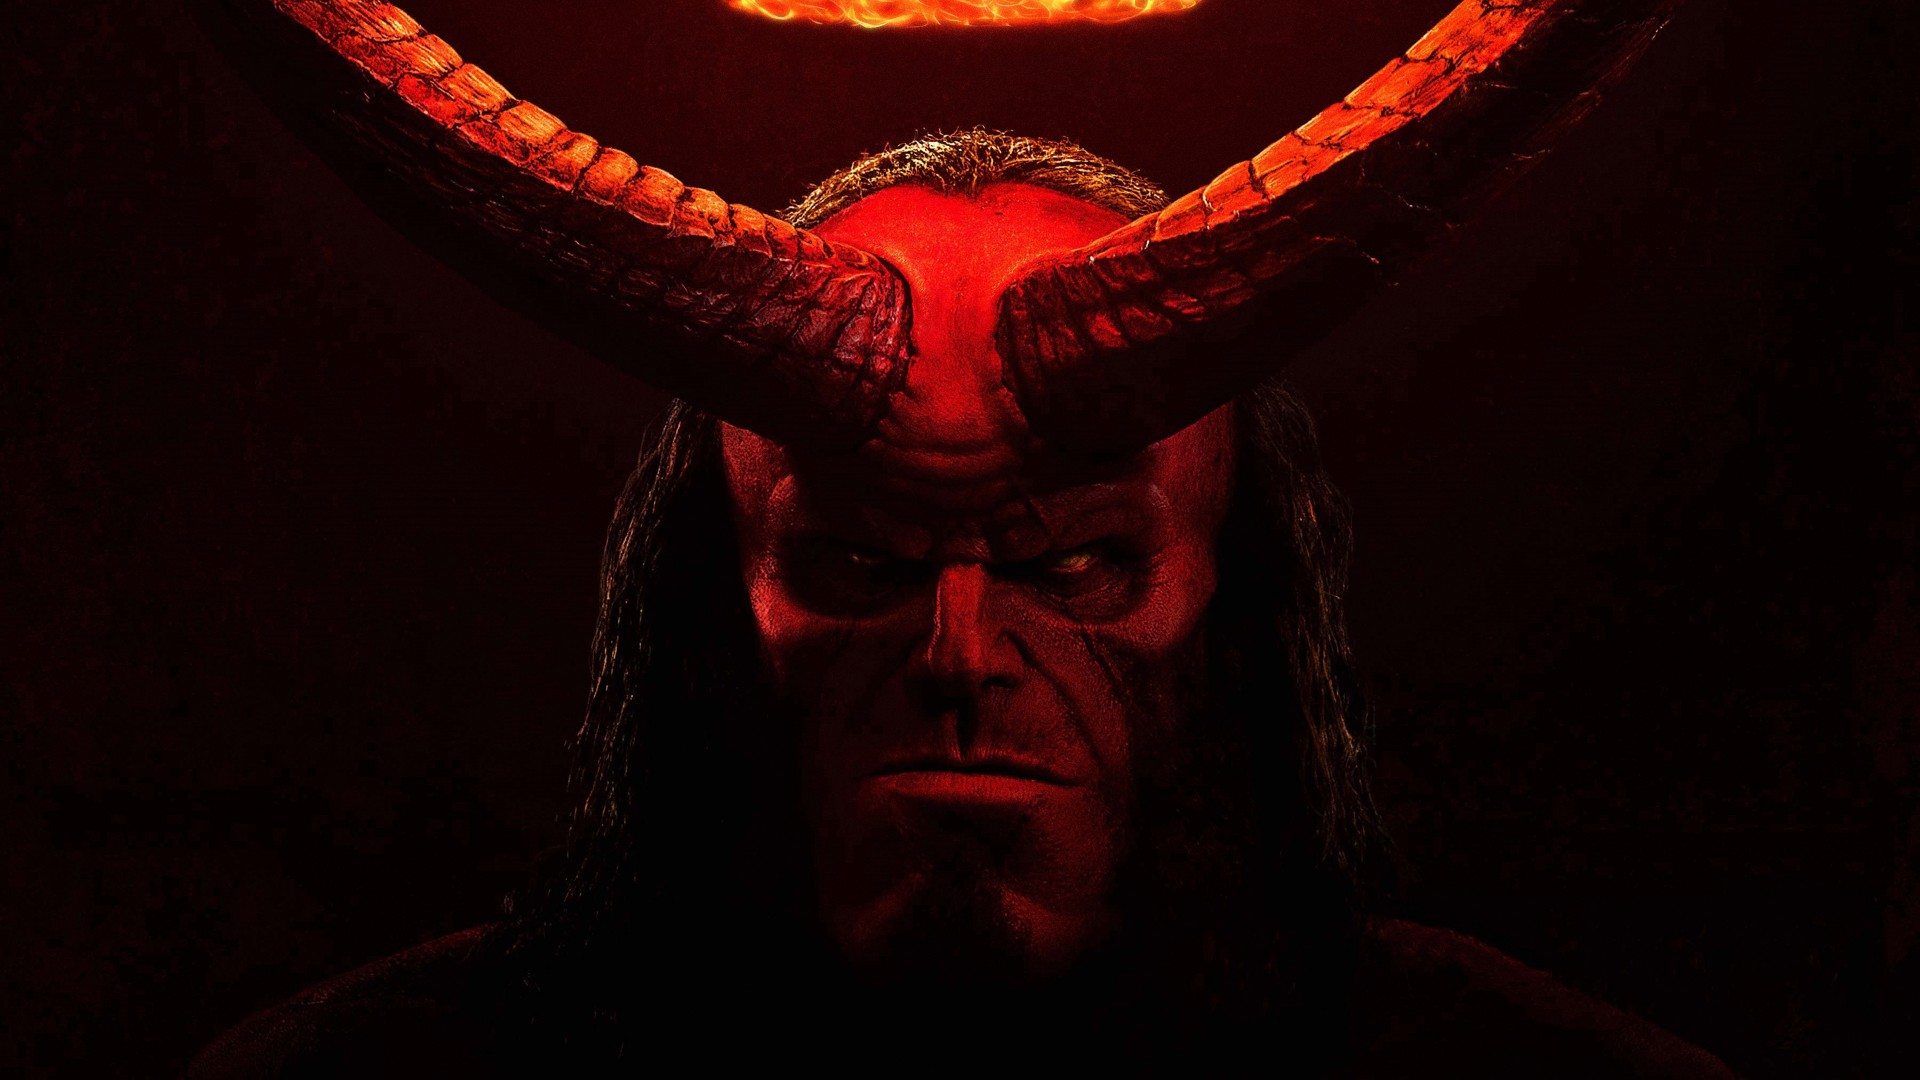 I Phone X Inside 3d Wallpaper Hellboy 2019 Movie 4k Wallpapers Hd Wallpapers Id 27056